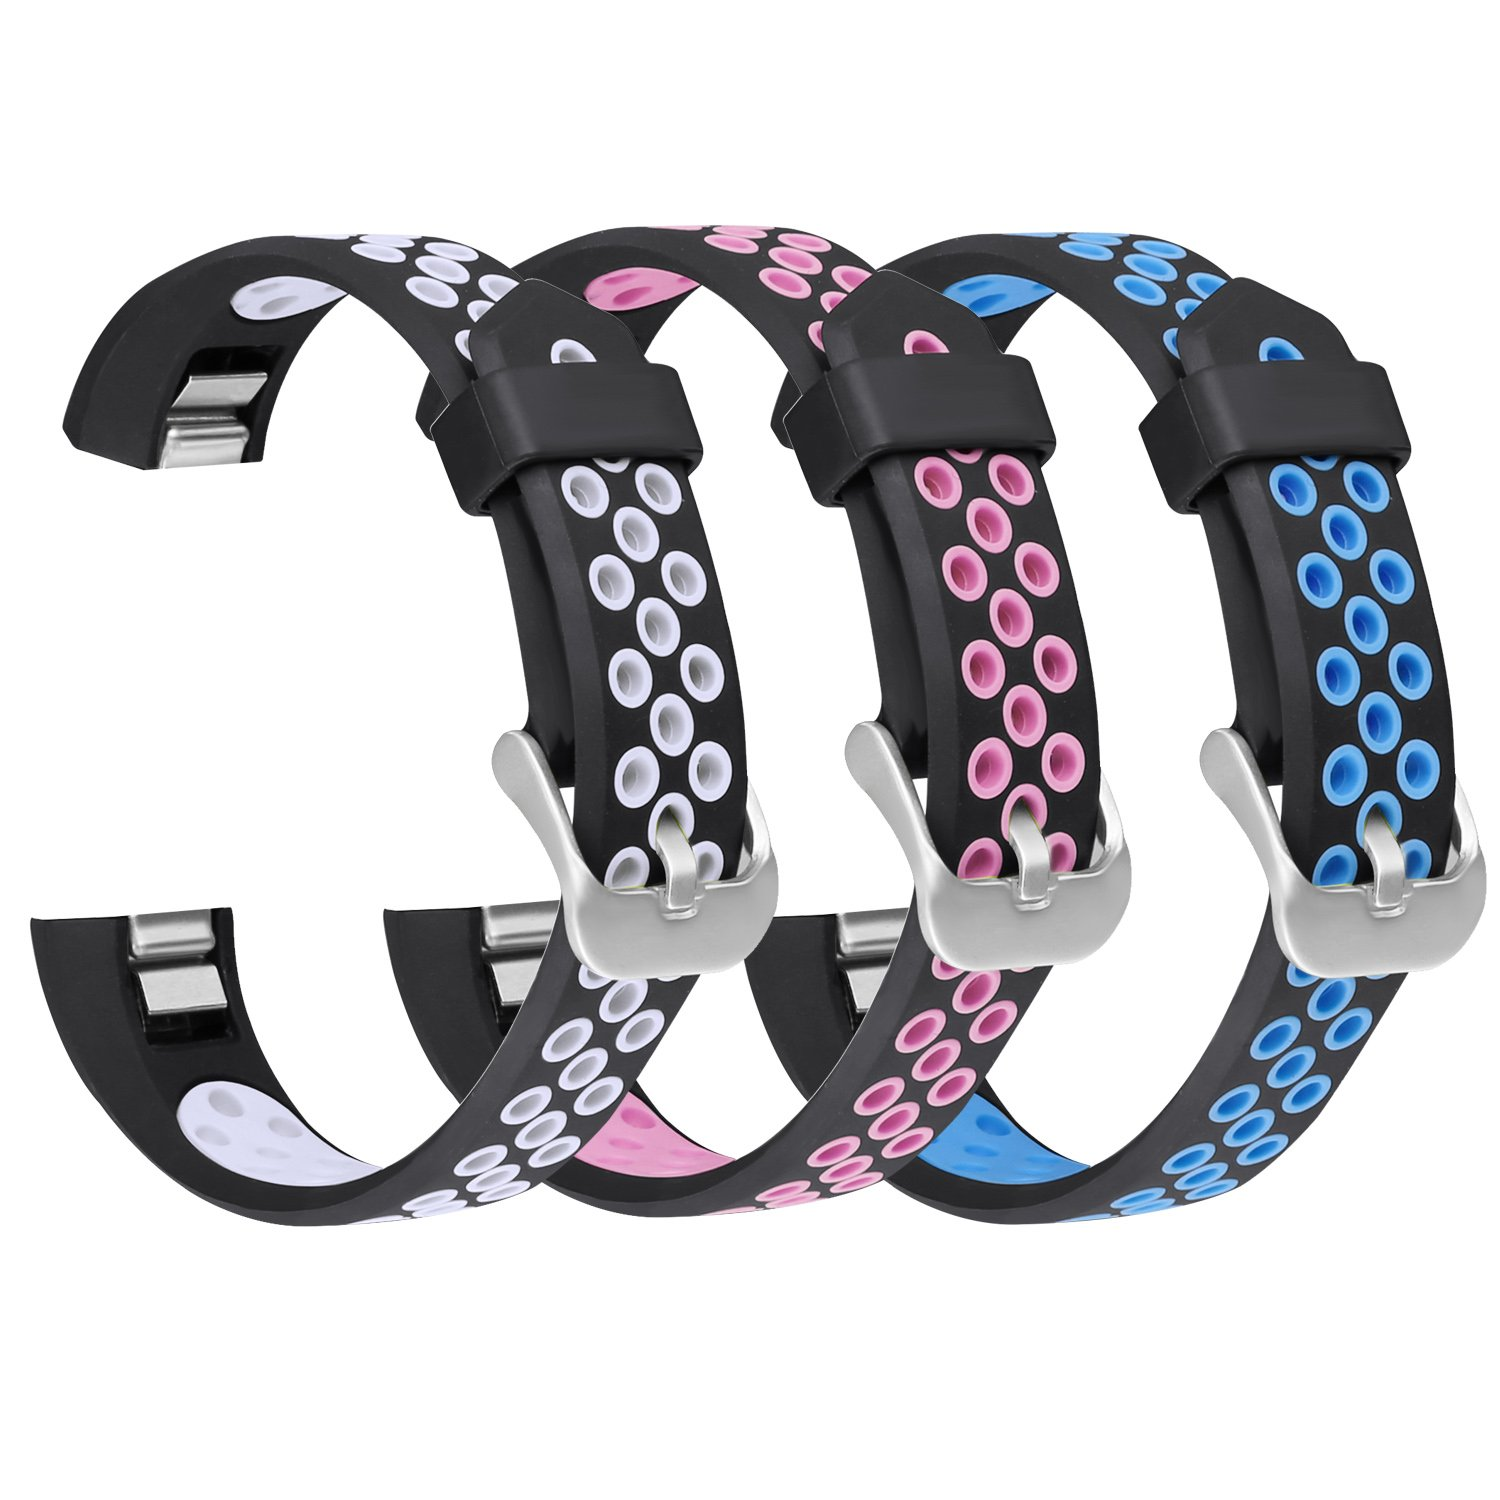 For Fitbit ALTAアルタHR/帯、Skyletシリコン通気性Wristbands for Fitbit ALTAとFitbit ALTA HRブレスレット(トラッカーなし) B078M561GC 3PC: Black-White&Black-Pink&Black-Blue Large